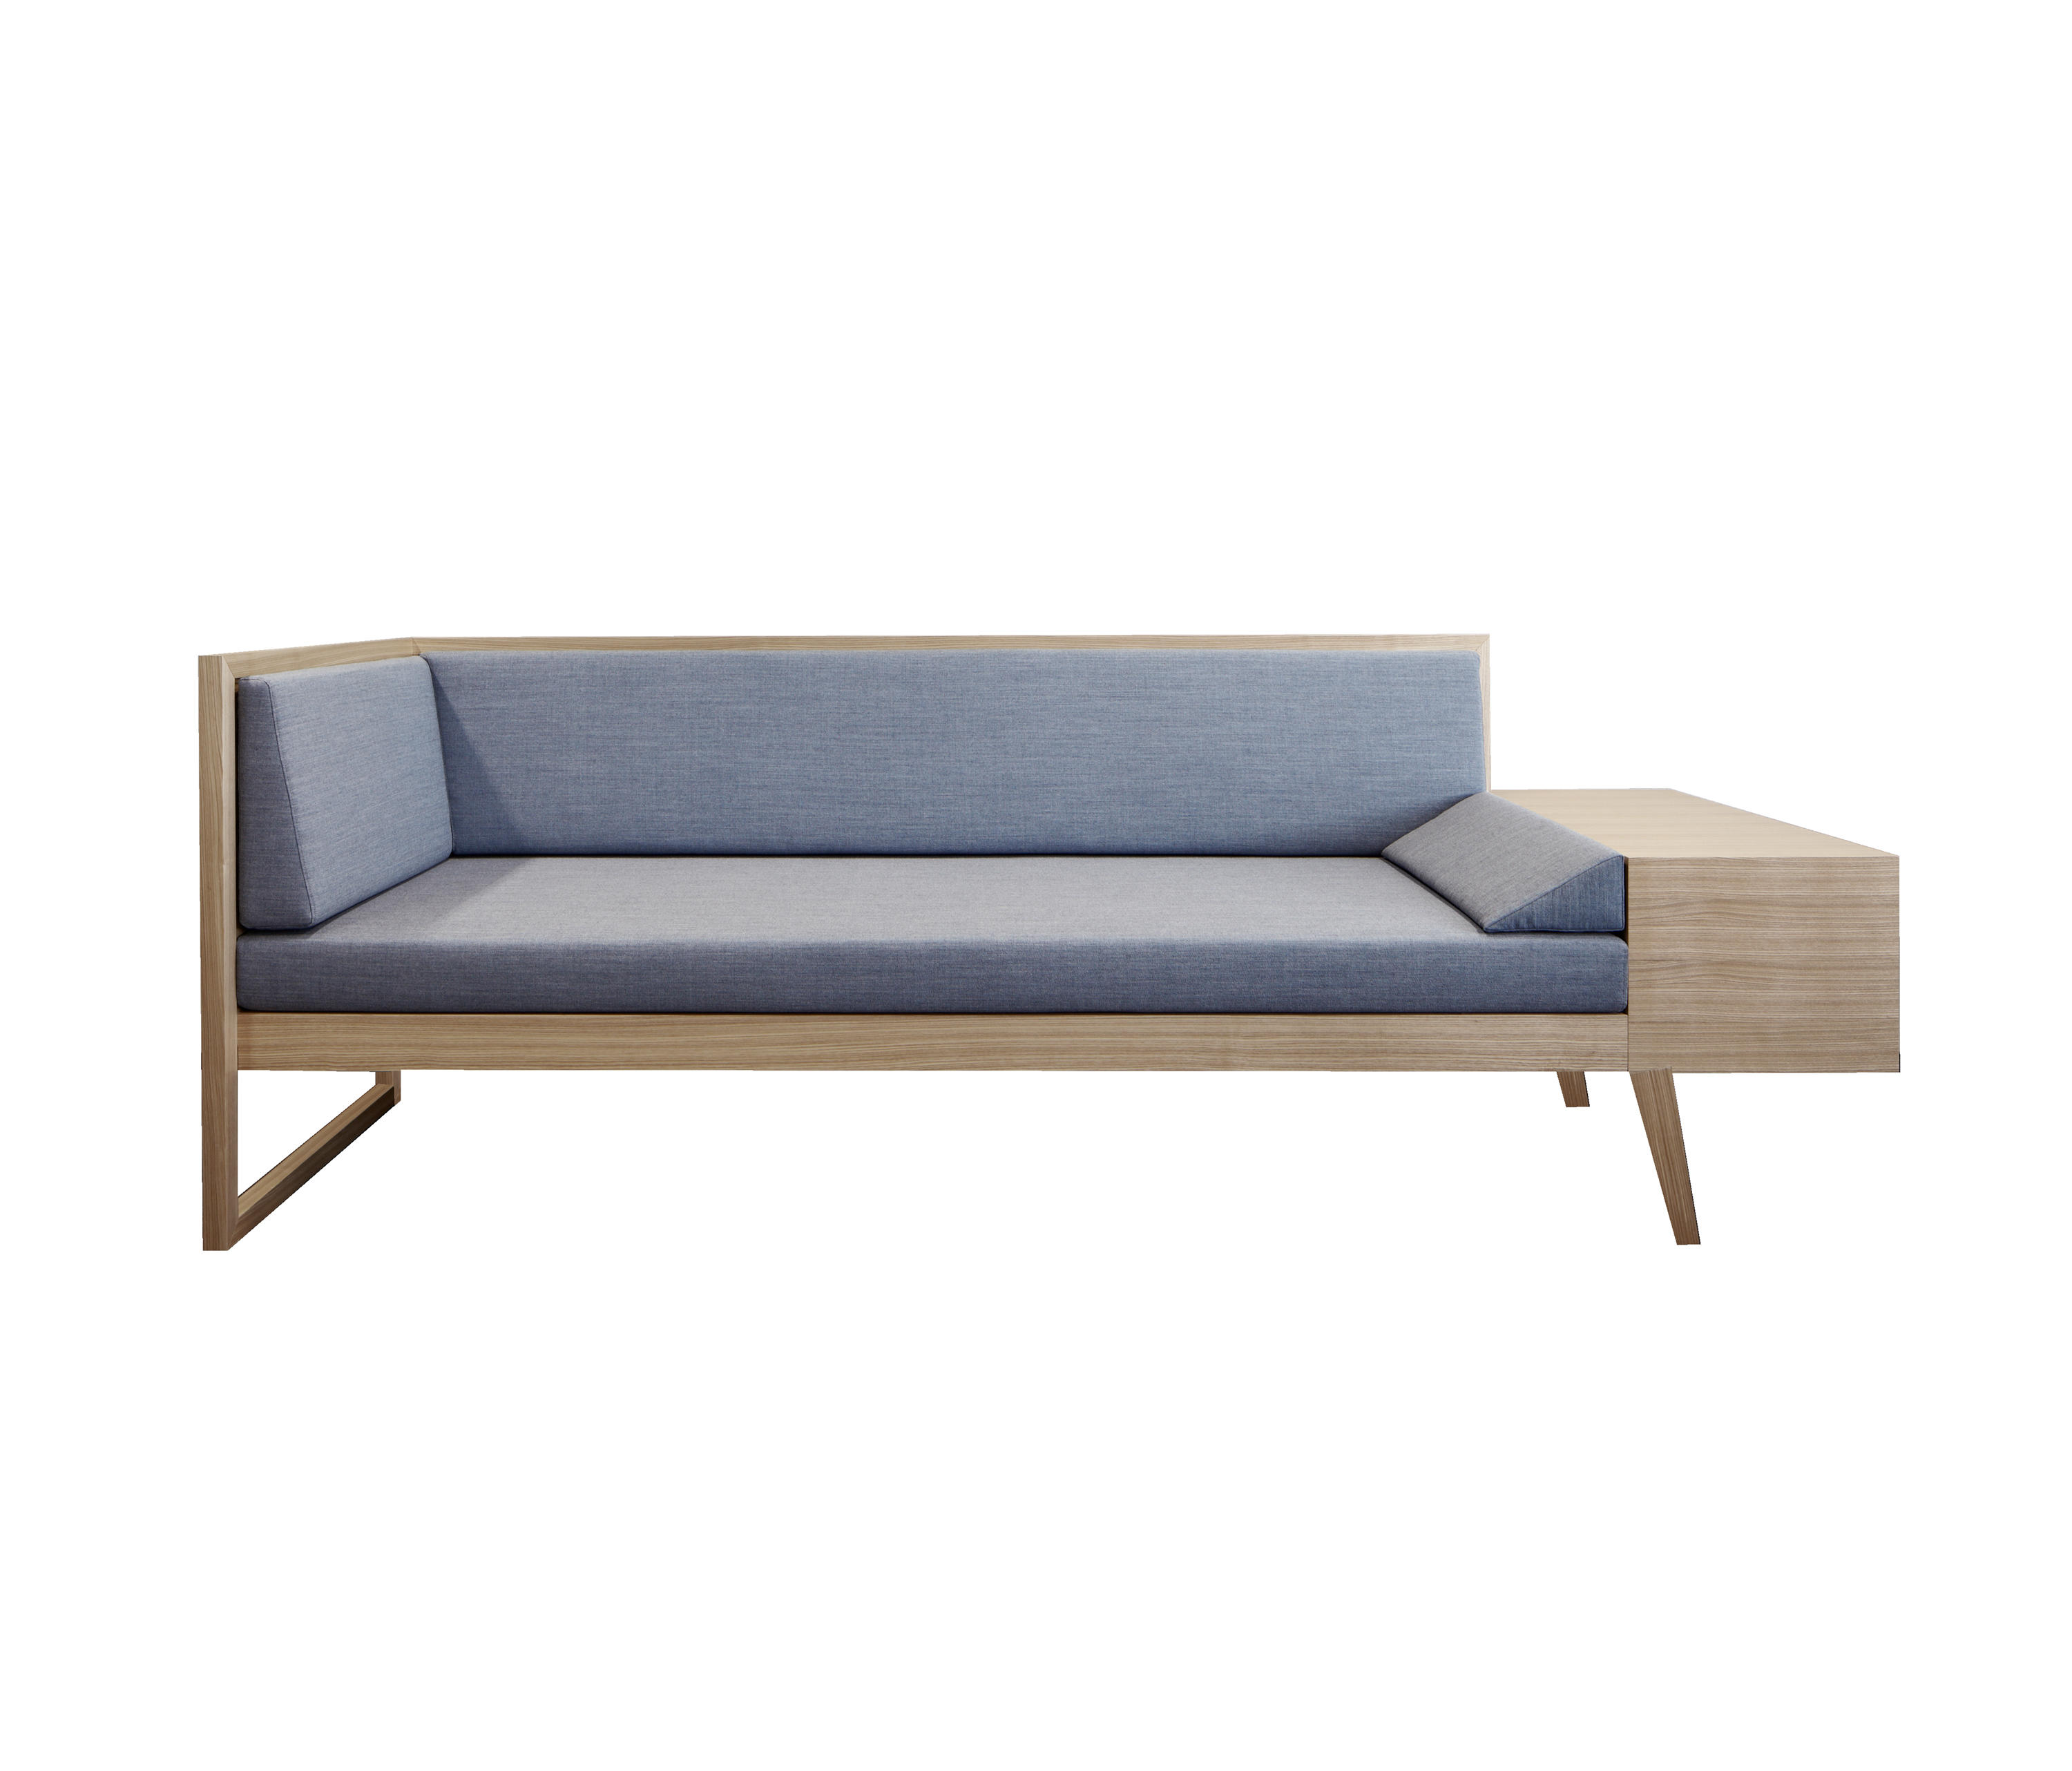 Sofa sophie sofa beds from raum b architektur architonic for Schlafcouch sofa